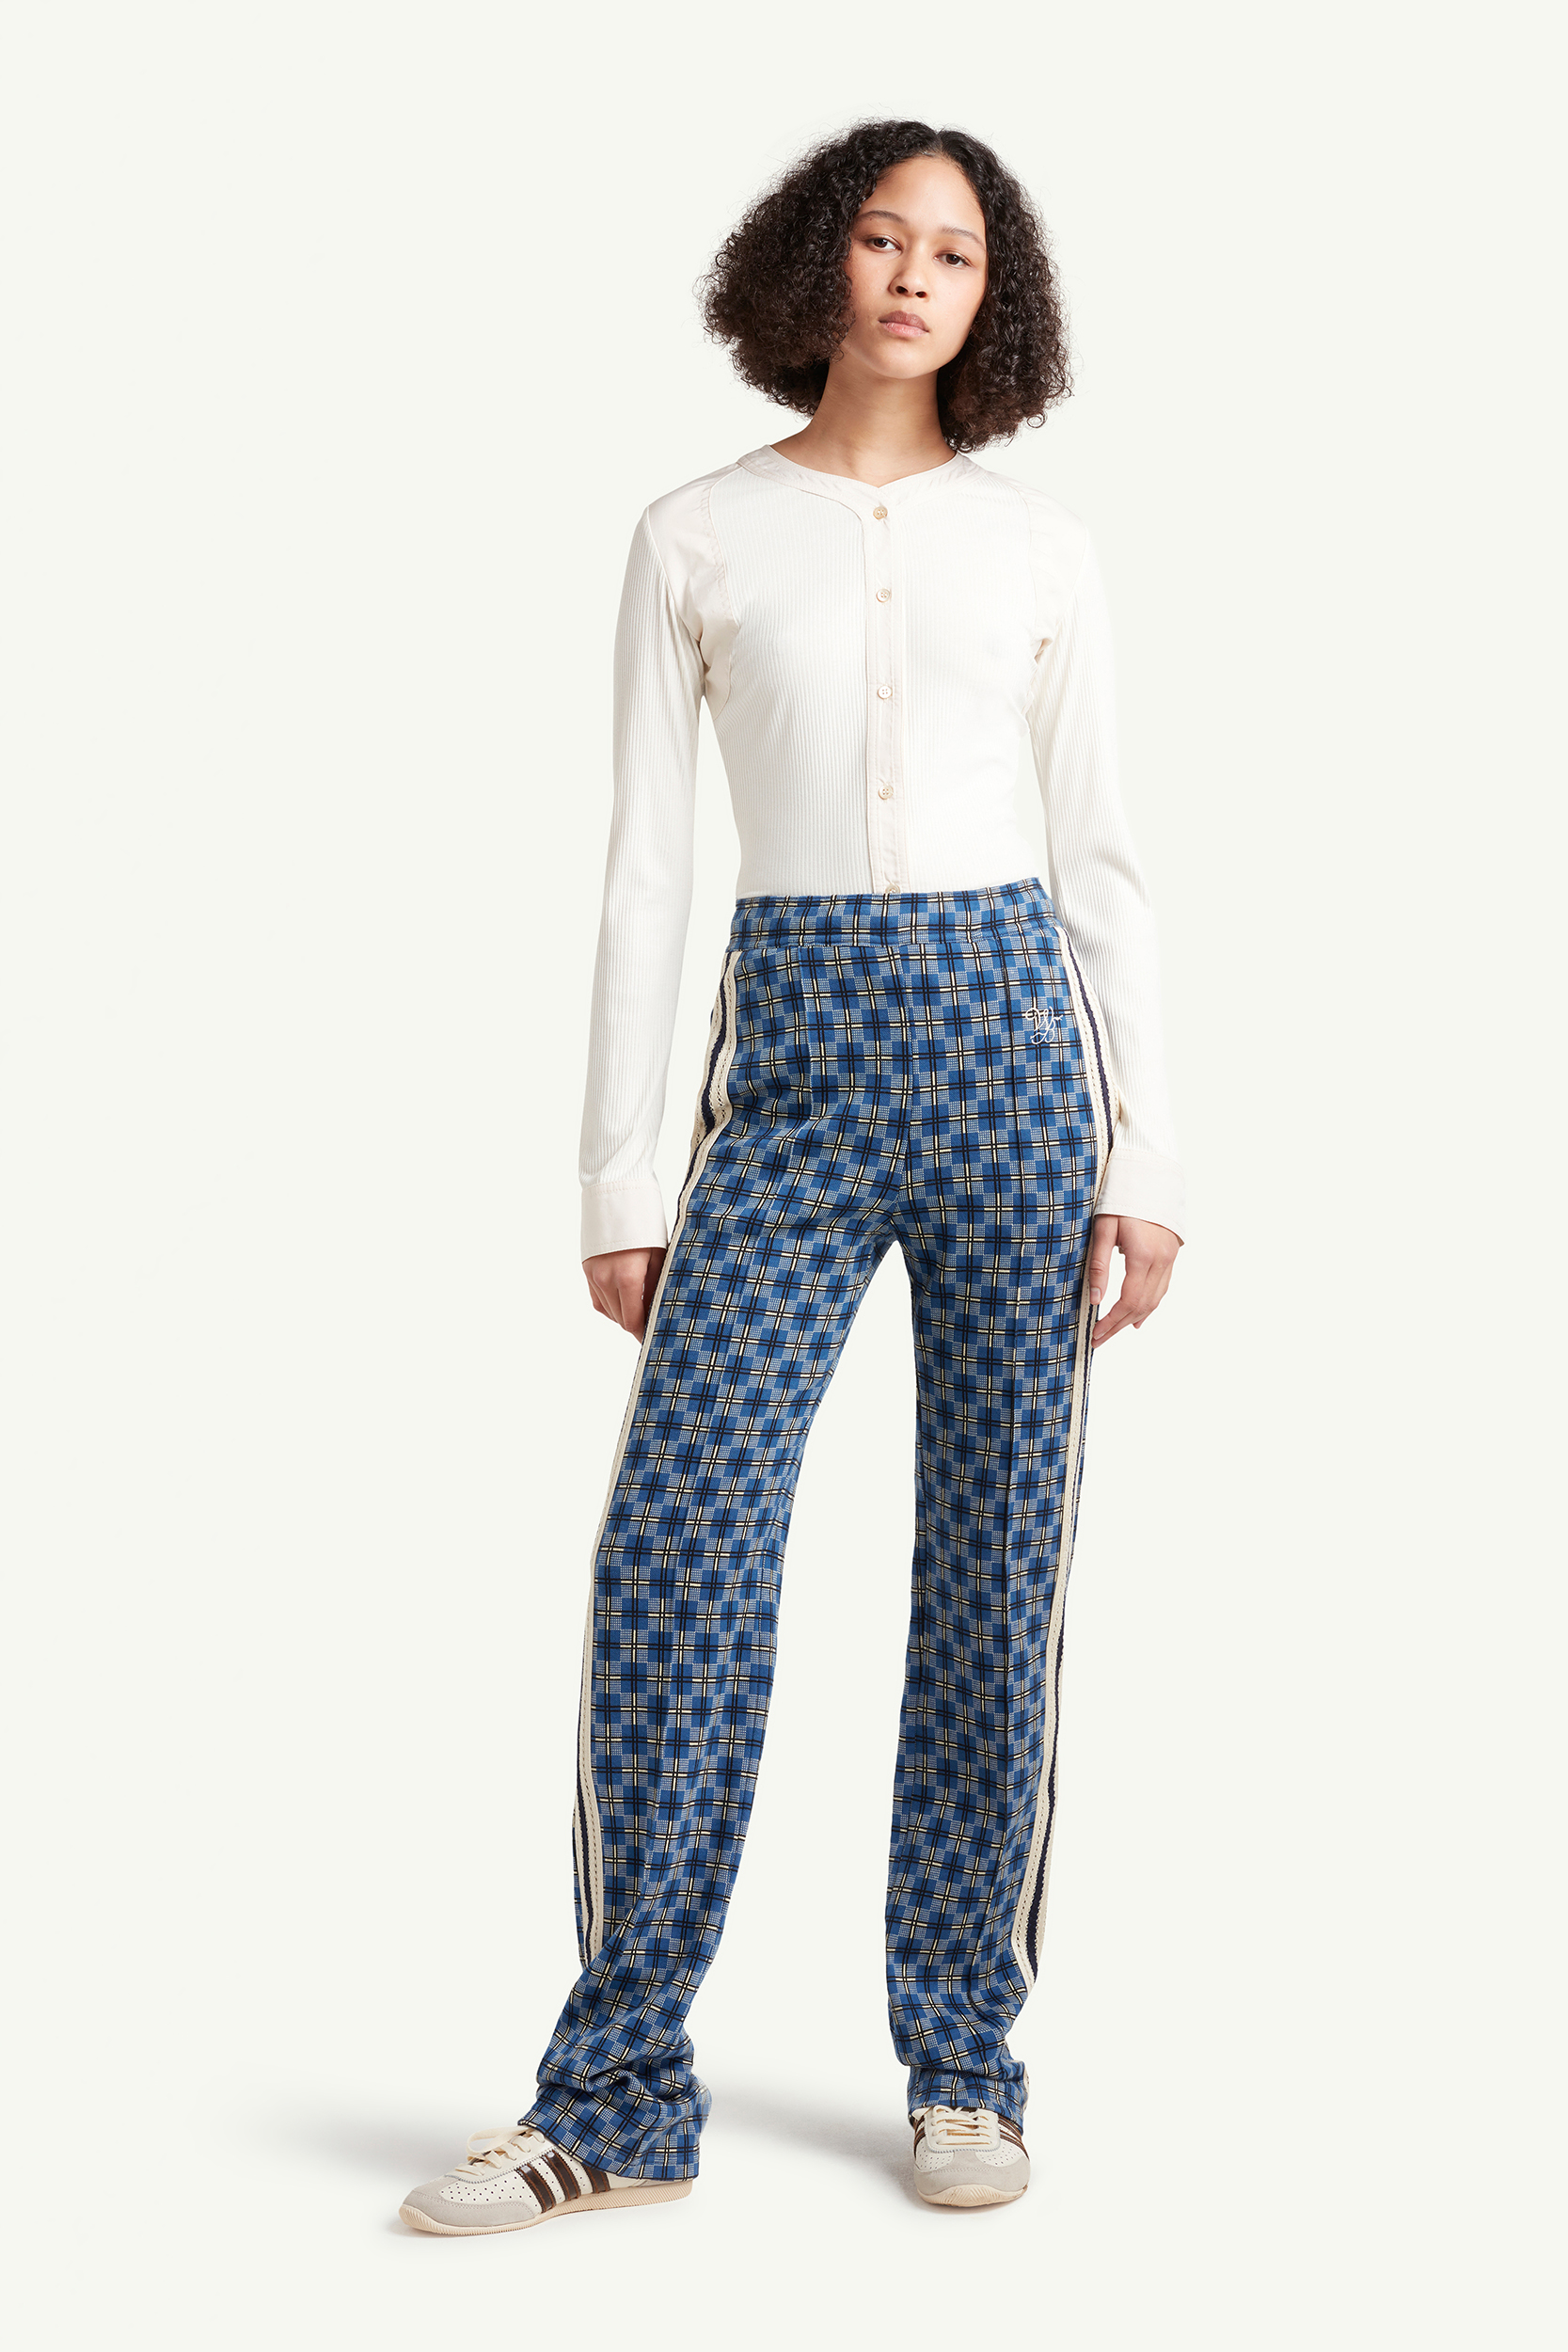 Womenswear model wearing Detail shot of Wales Bonner blue pattern trousers with white stripes on the side and white top